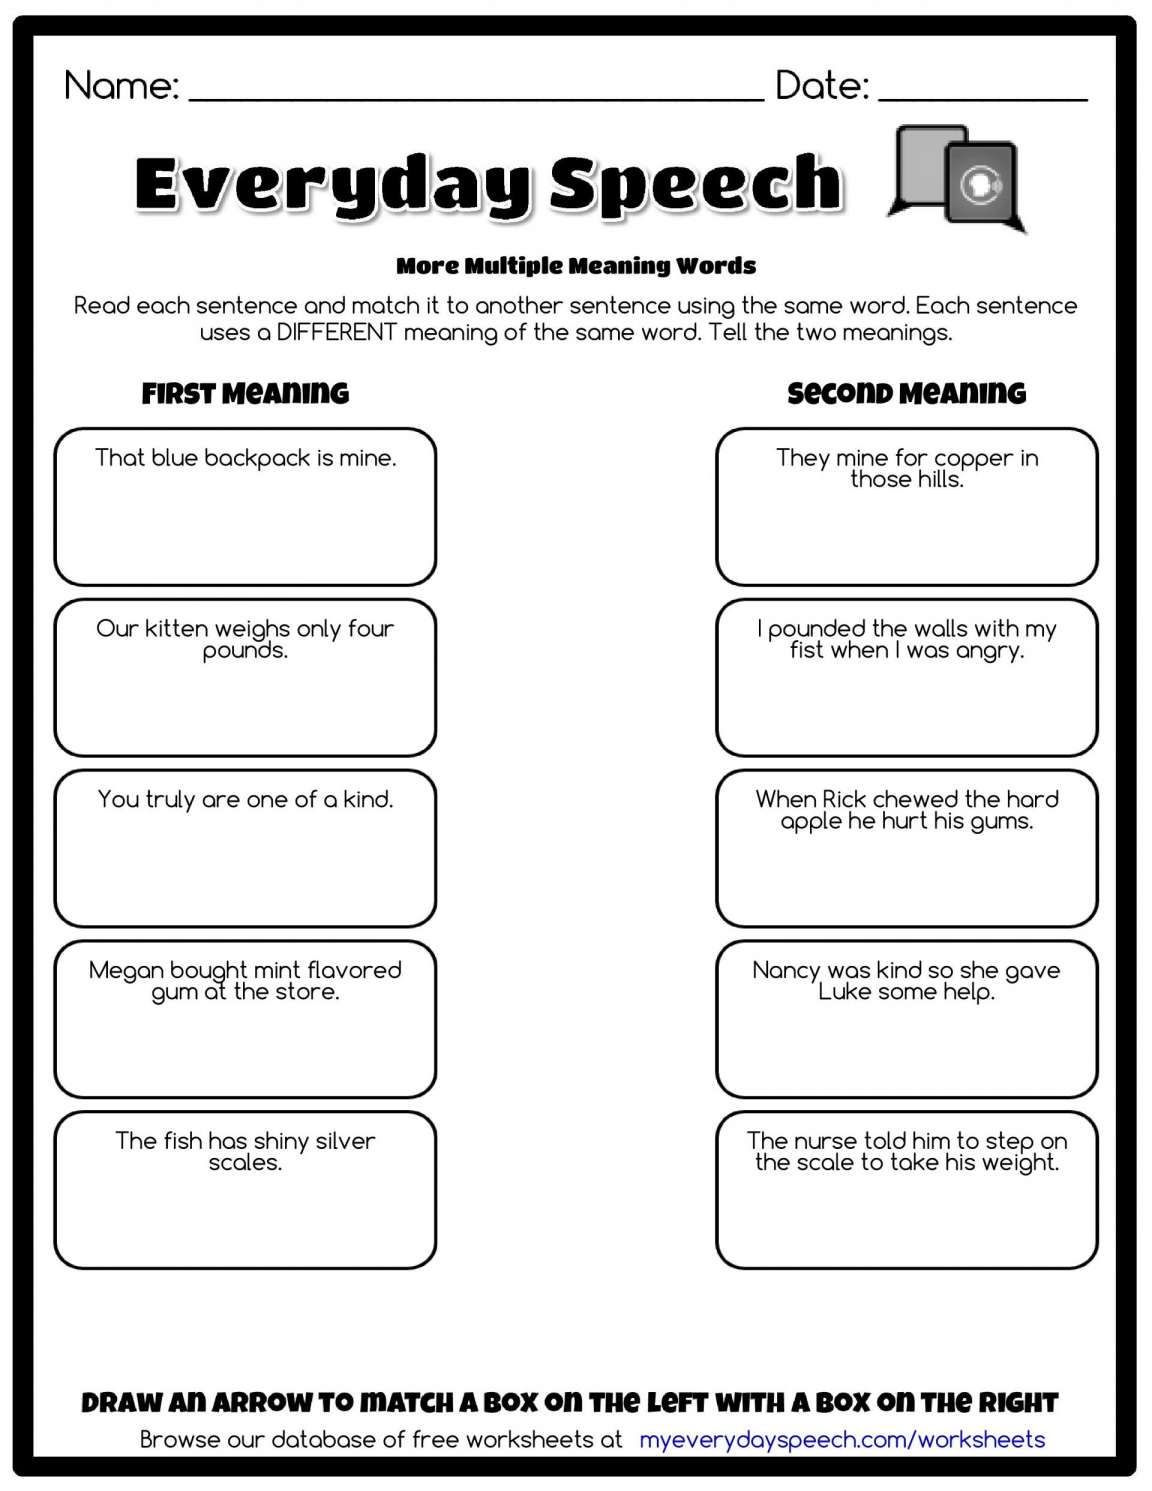 11 Reading A Dictionary Entry Worksheet